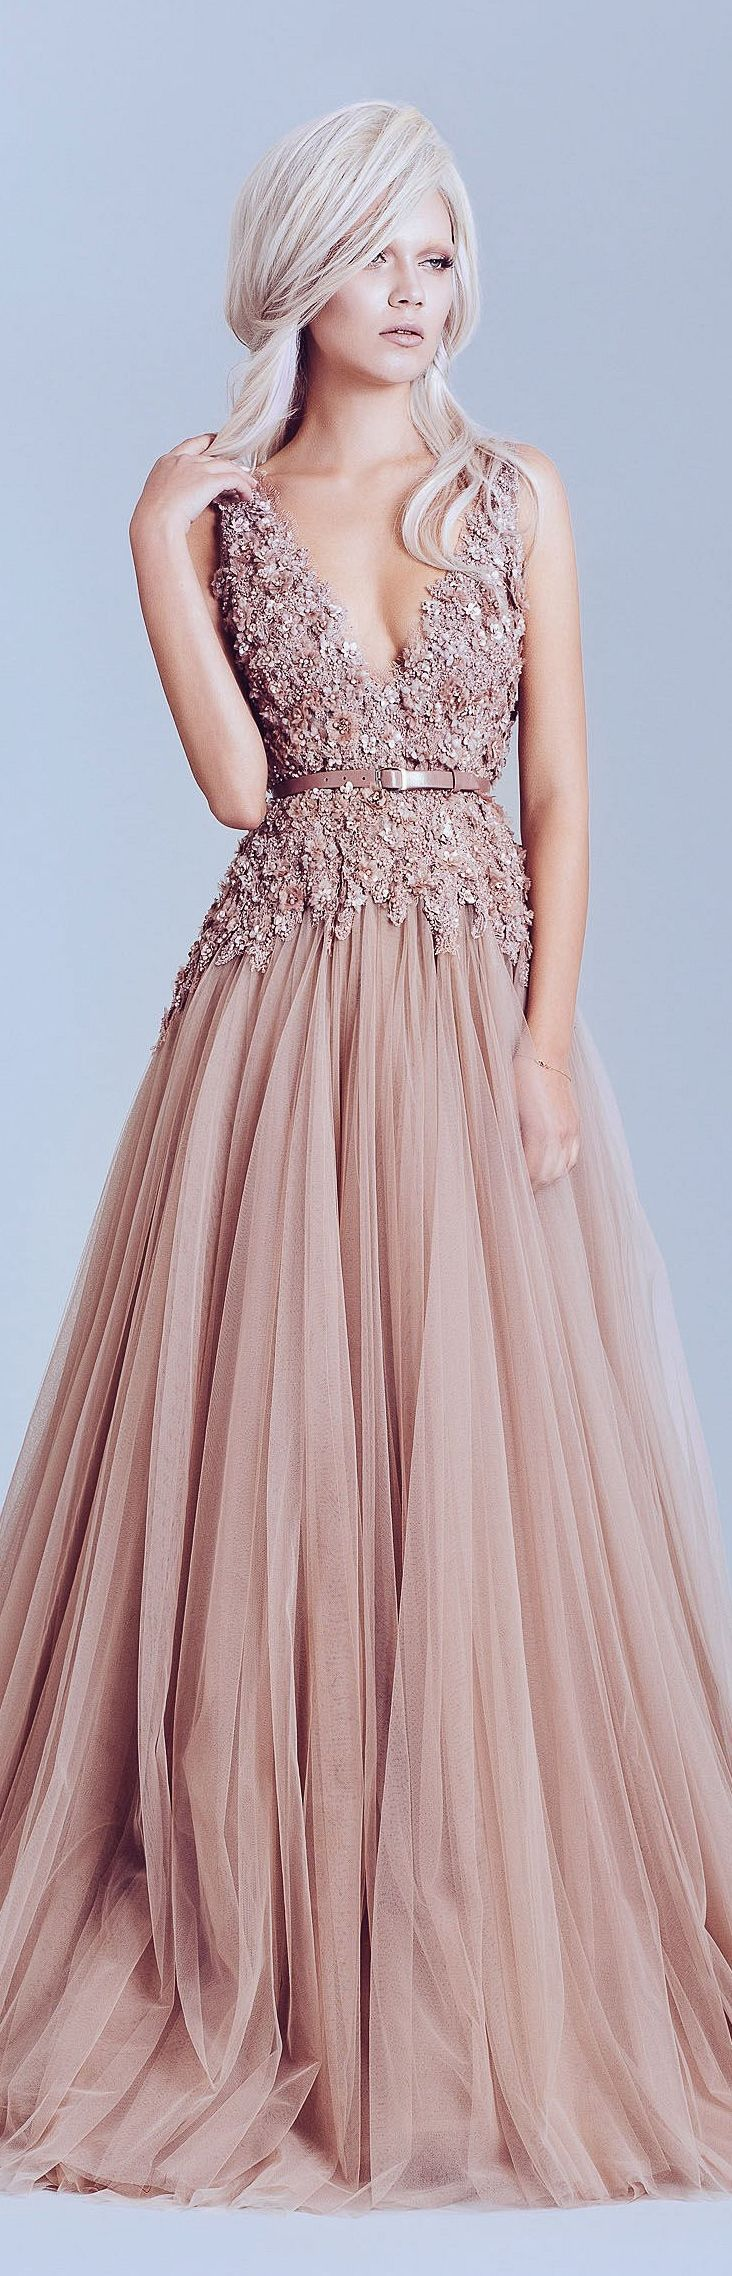 Tbdress prom dresses archives blush gown couture and gowns